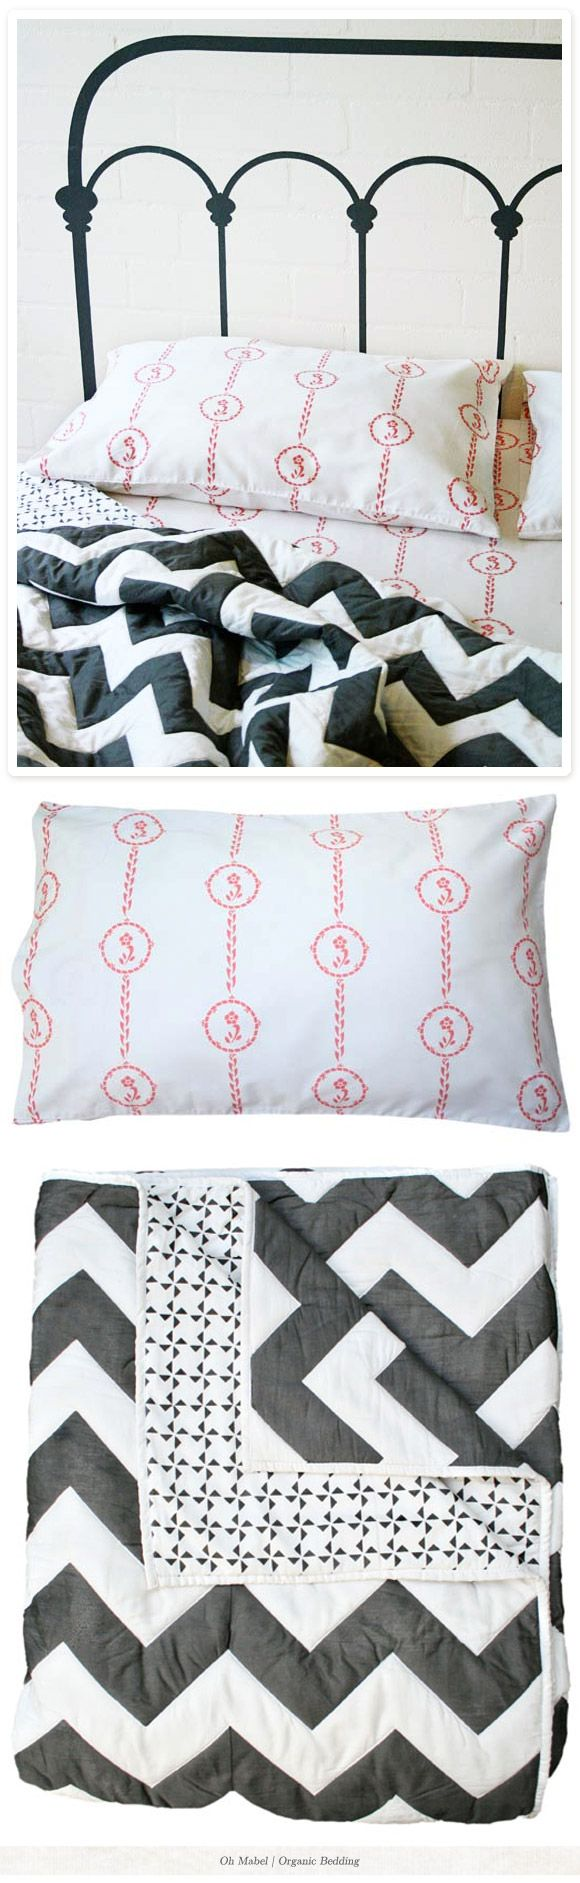 Oooh my. Love the zig zag bedspread! from OhMabel.com: Chevron Quilts, Guest Beds, Beds Spreads, Bedrooms Beds, Organizations Beds, Chevron Bedspreads, Creatures Comforters, Grey Chevron, Chevron Comforters